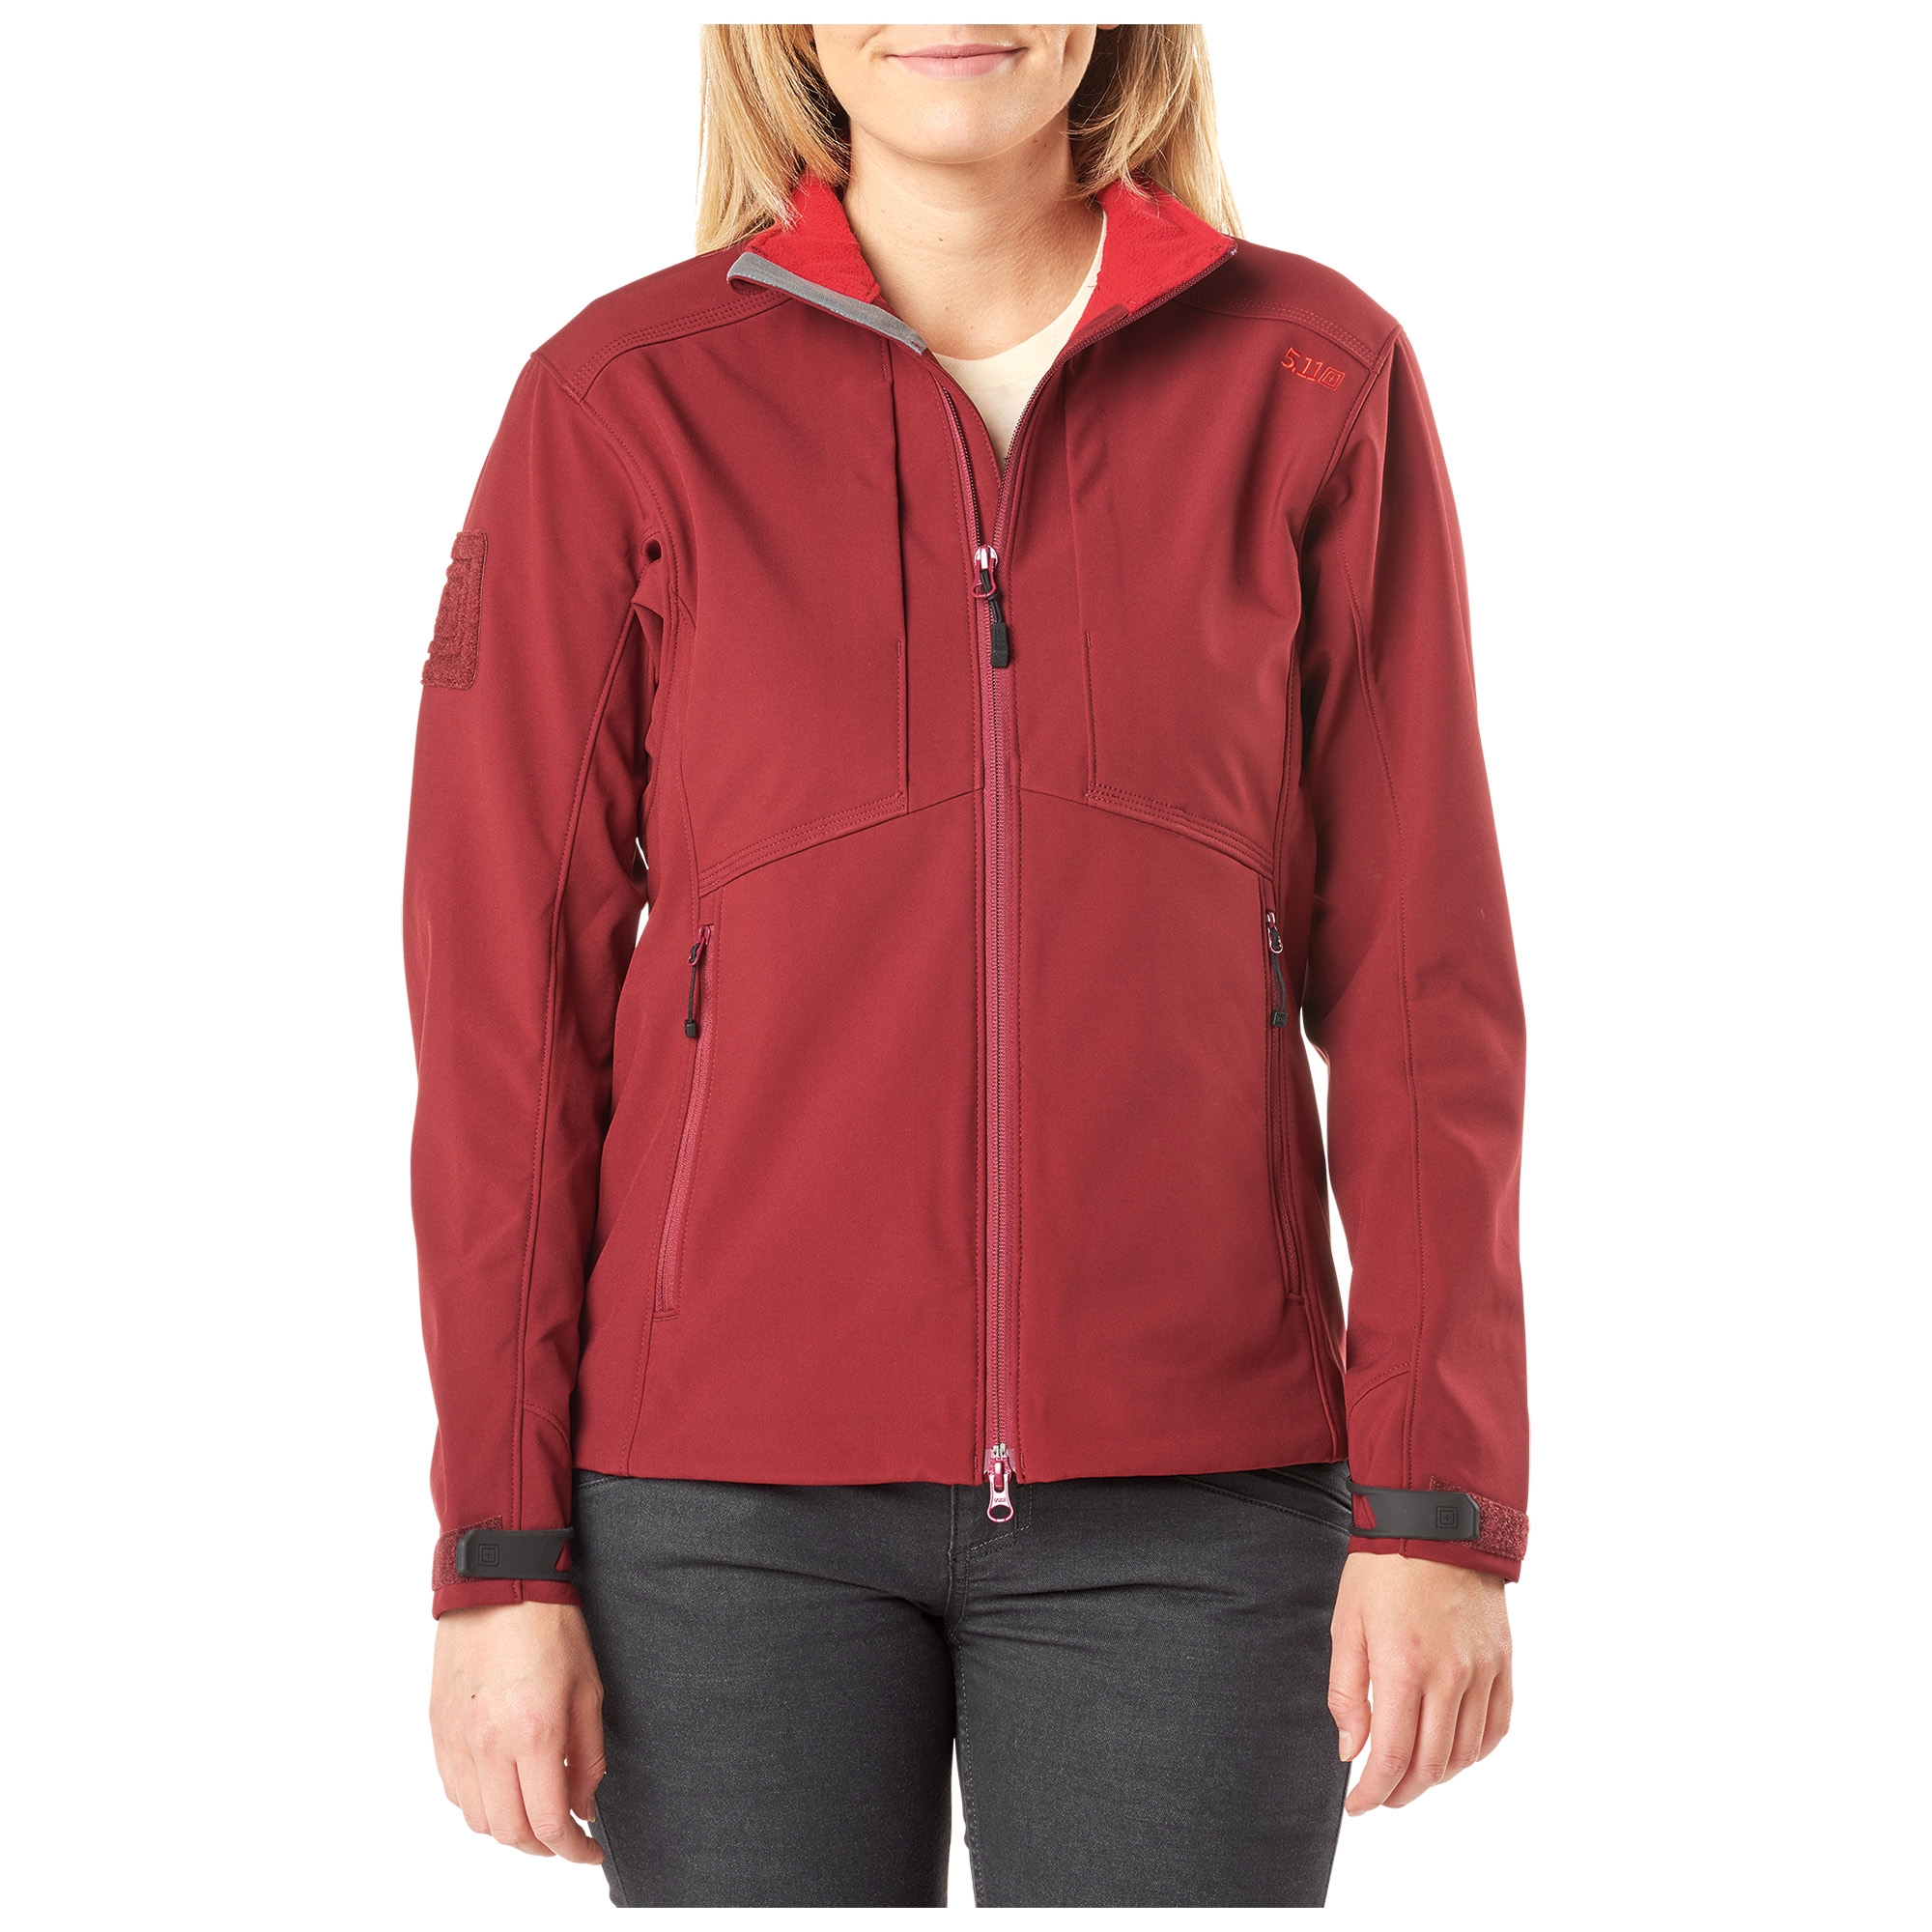 5.11 Tactical Women's Womens Sierra Softshell (Red)